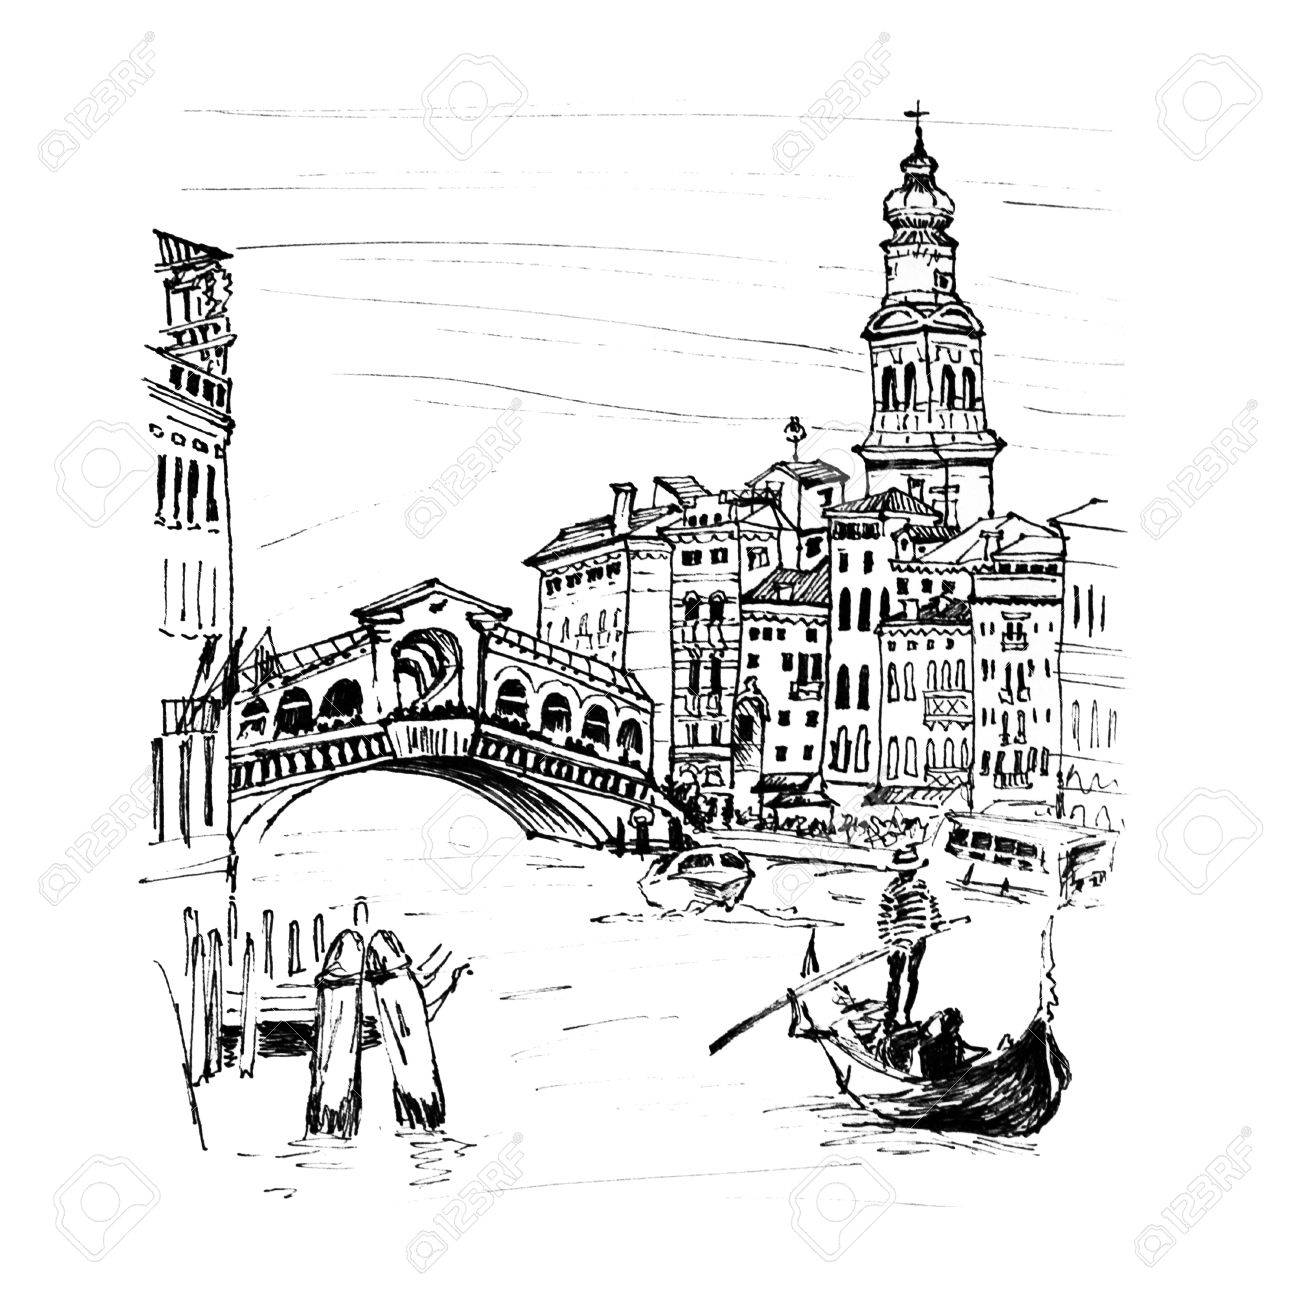 canal drawing at getdrawings com